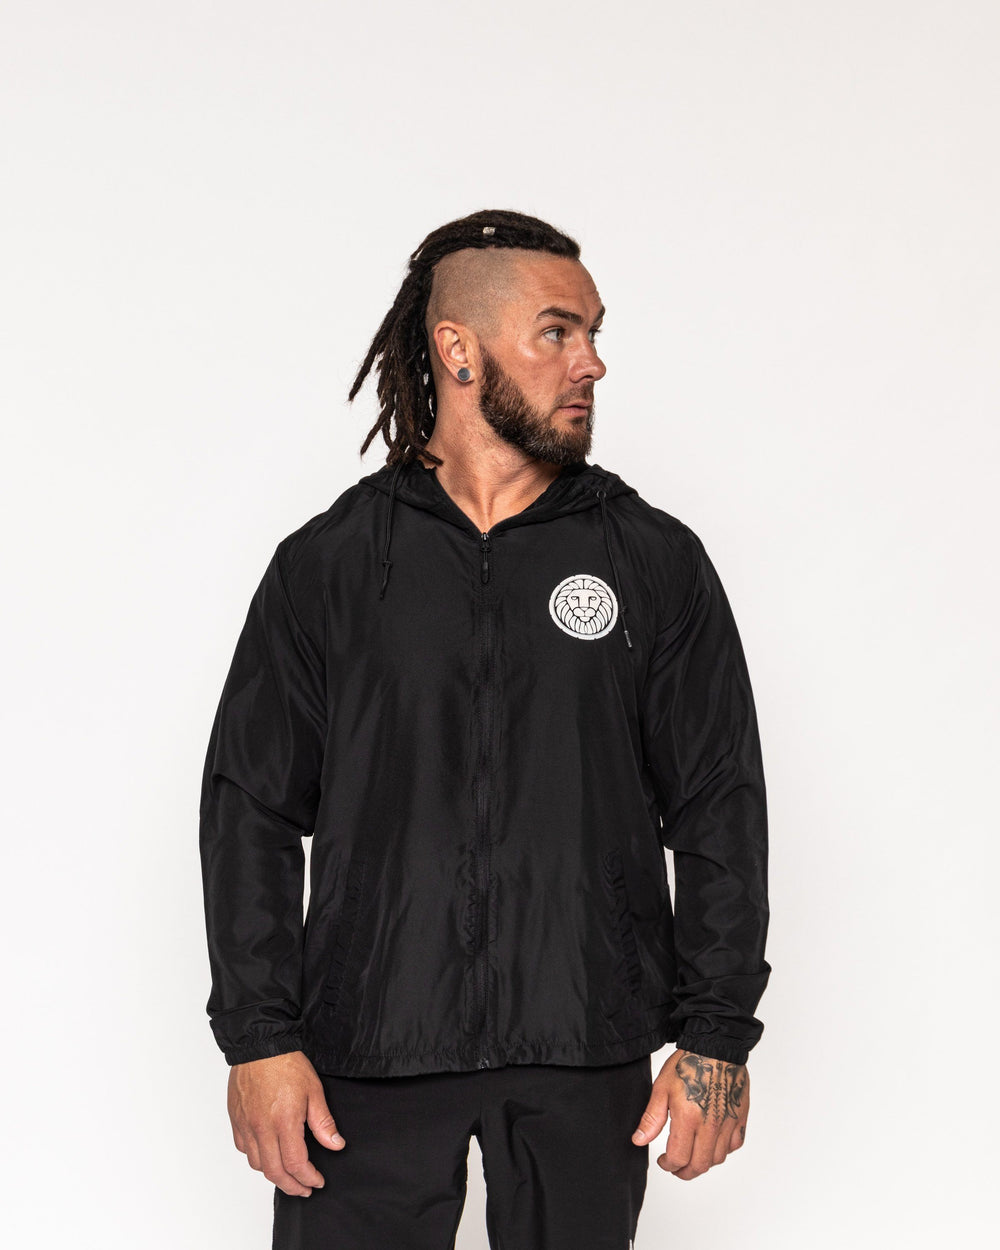 Trainer Windbreaker - Black MEN'S WINDBREAKERS STAIX M